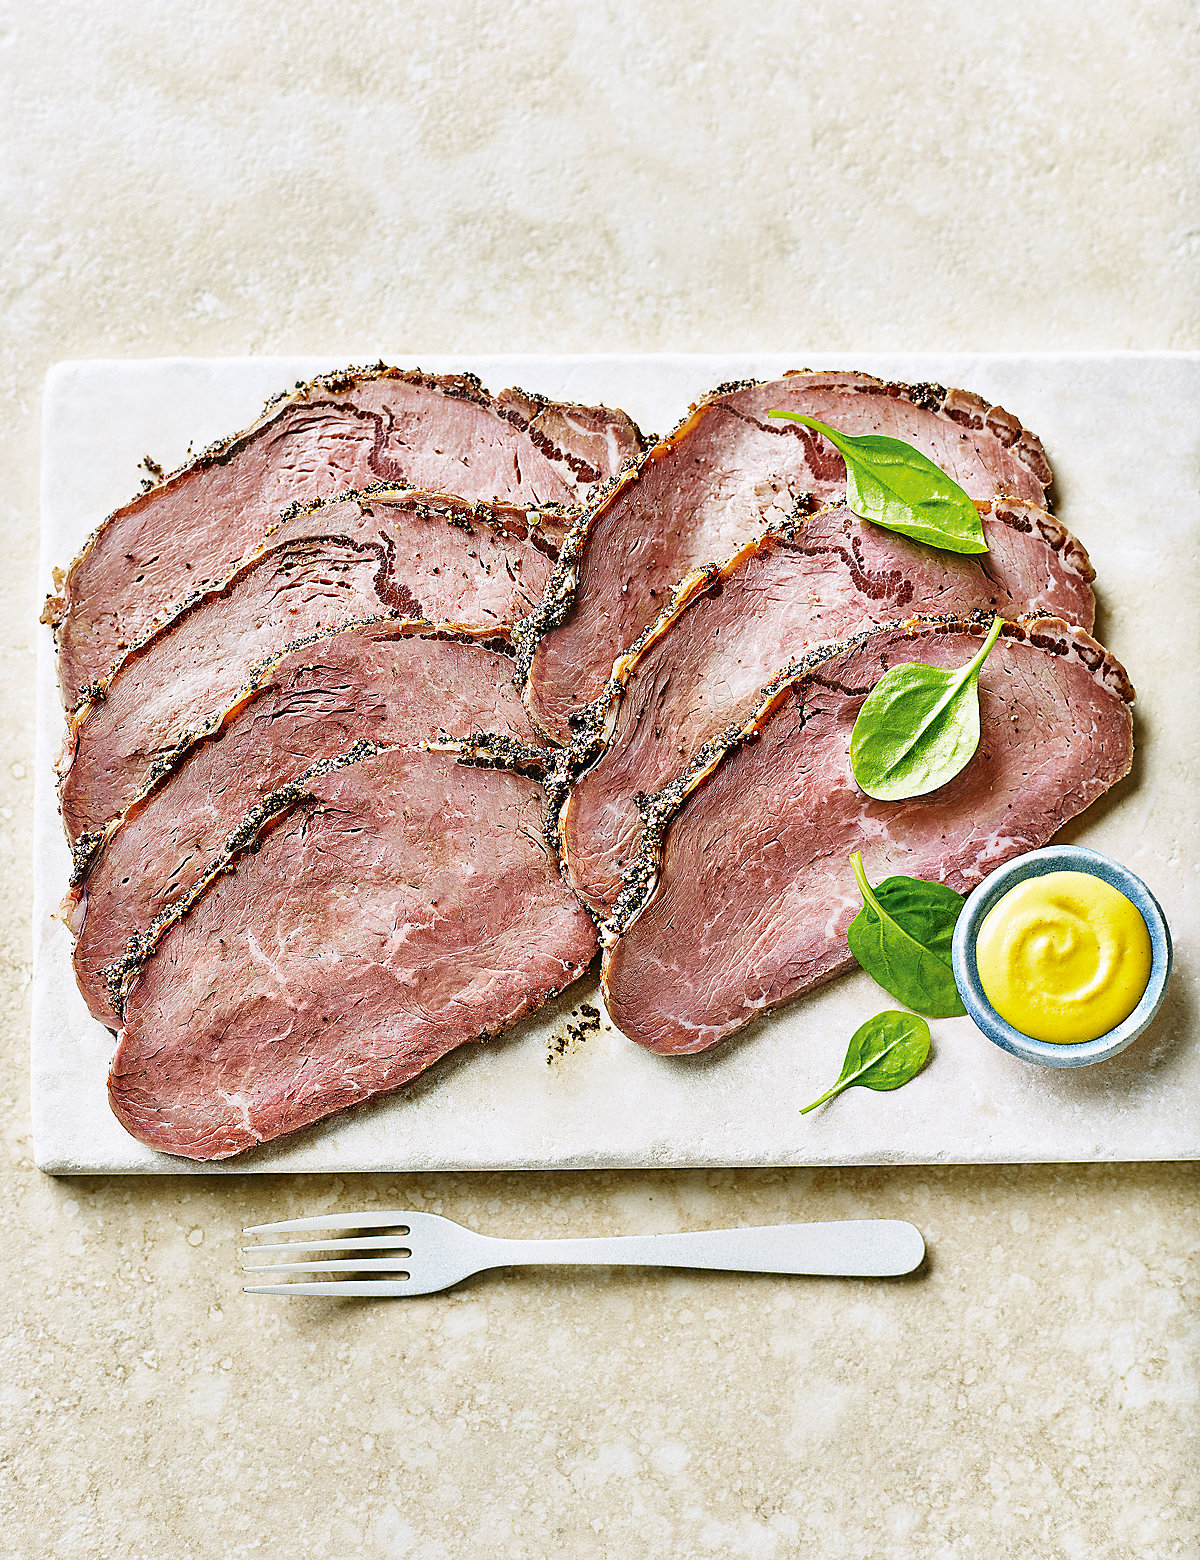 From The Deli Sirloin of Rare Roast Beef with a Light Black Peppercorn Crust - 6-8 Pieces